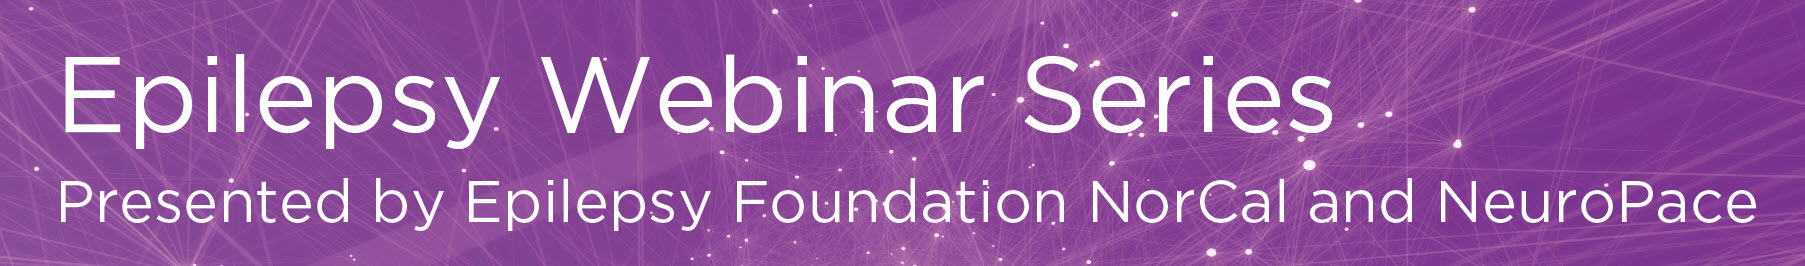 Epilepsy Webinar Series – Epilepsy Foundation of Northern California